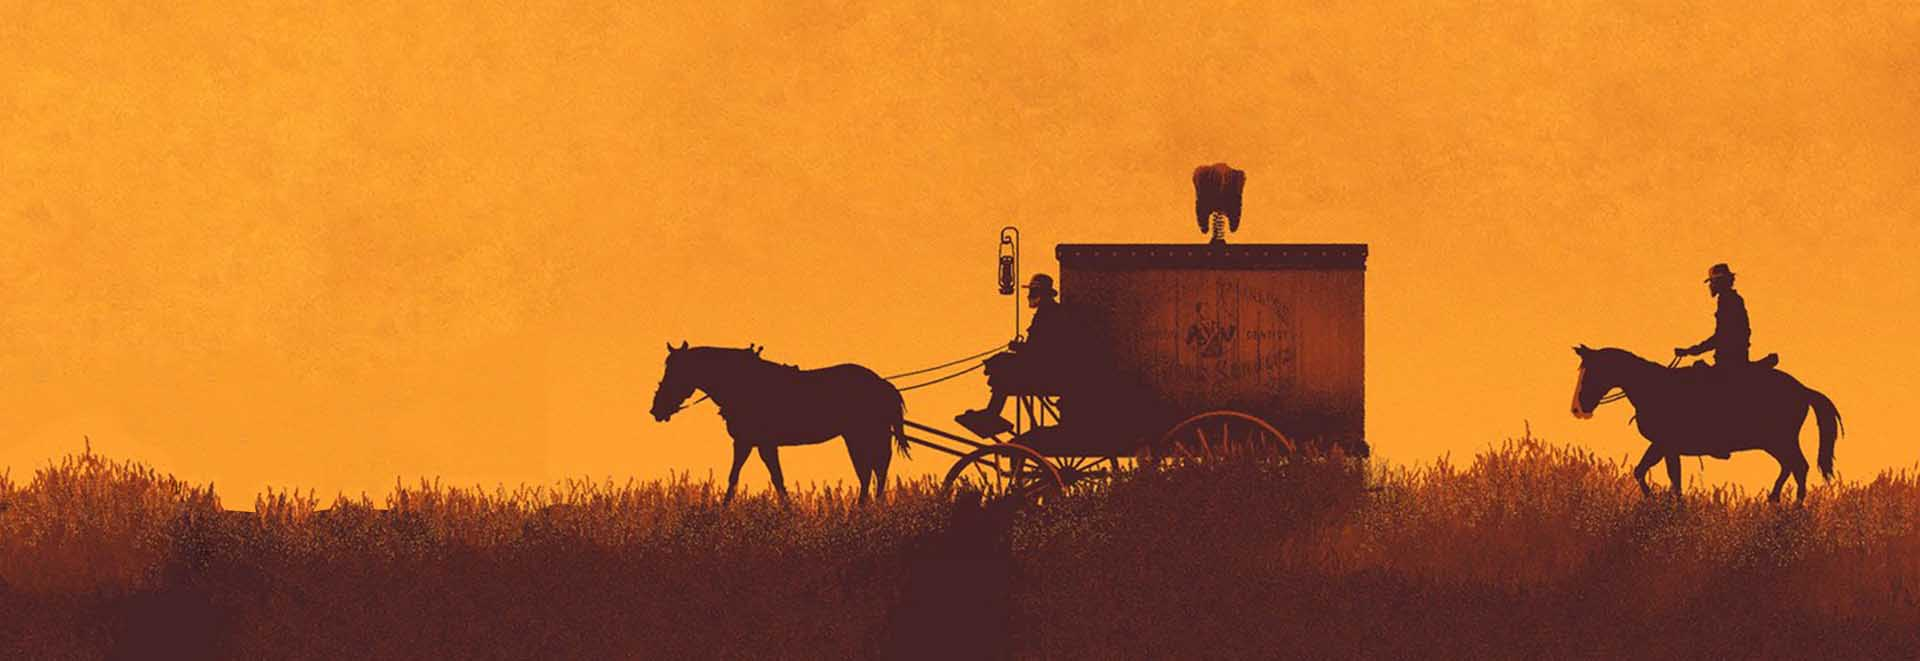 Django Unchained – Critique